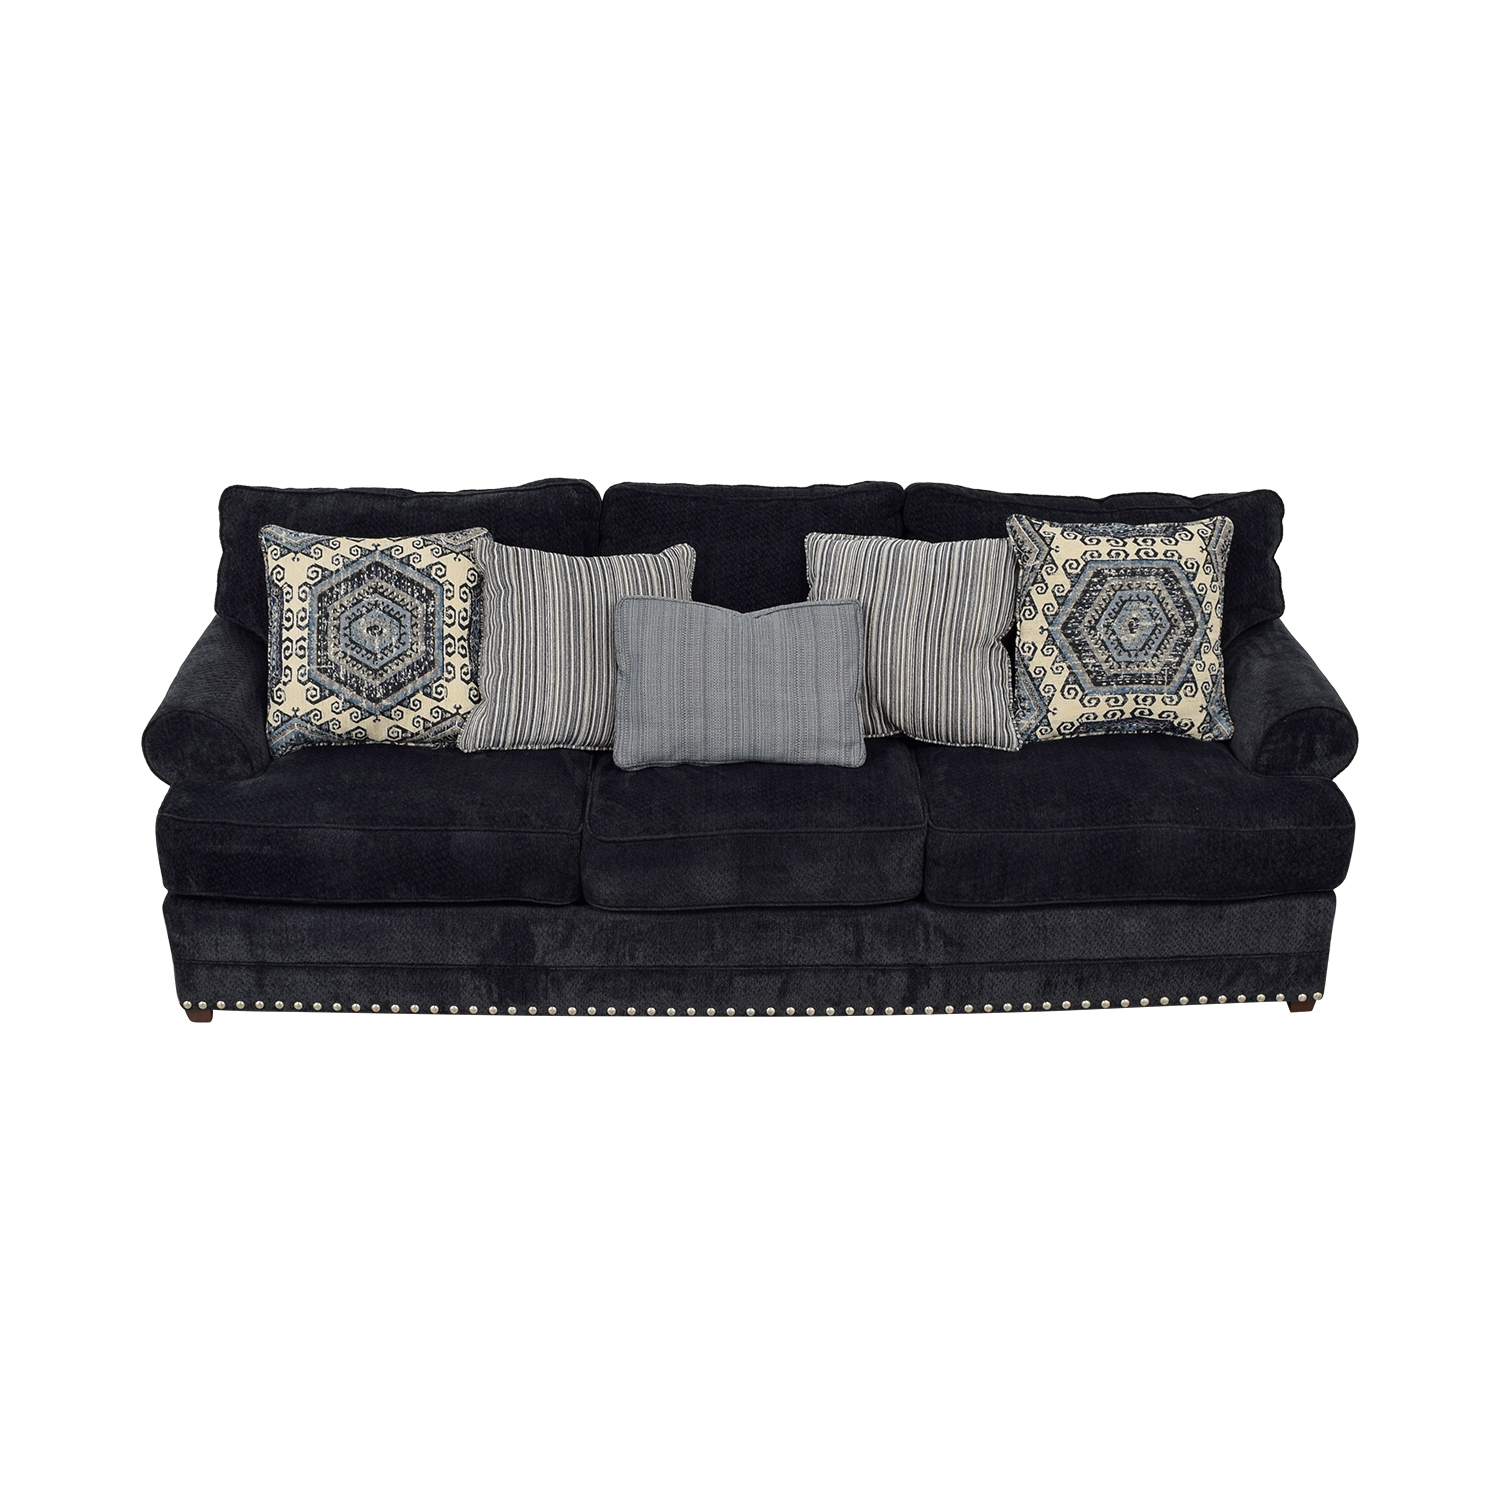 Bob's Furniture Bob's Furniture Dakota Navy Nailhead Three-Cushion Sofa coupon